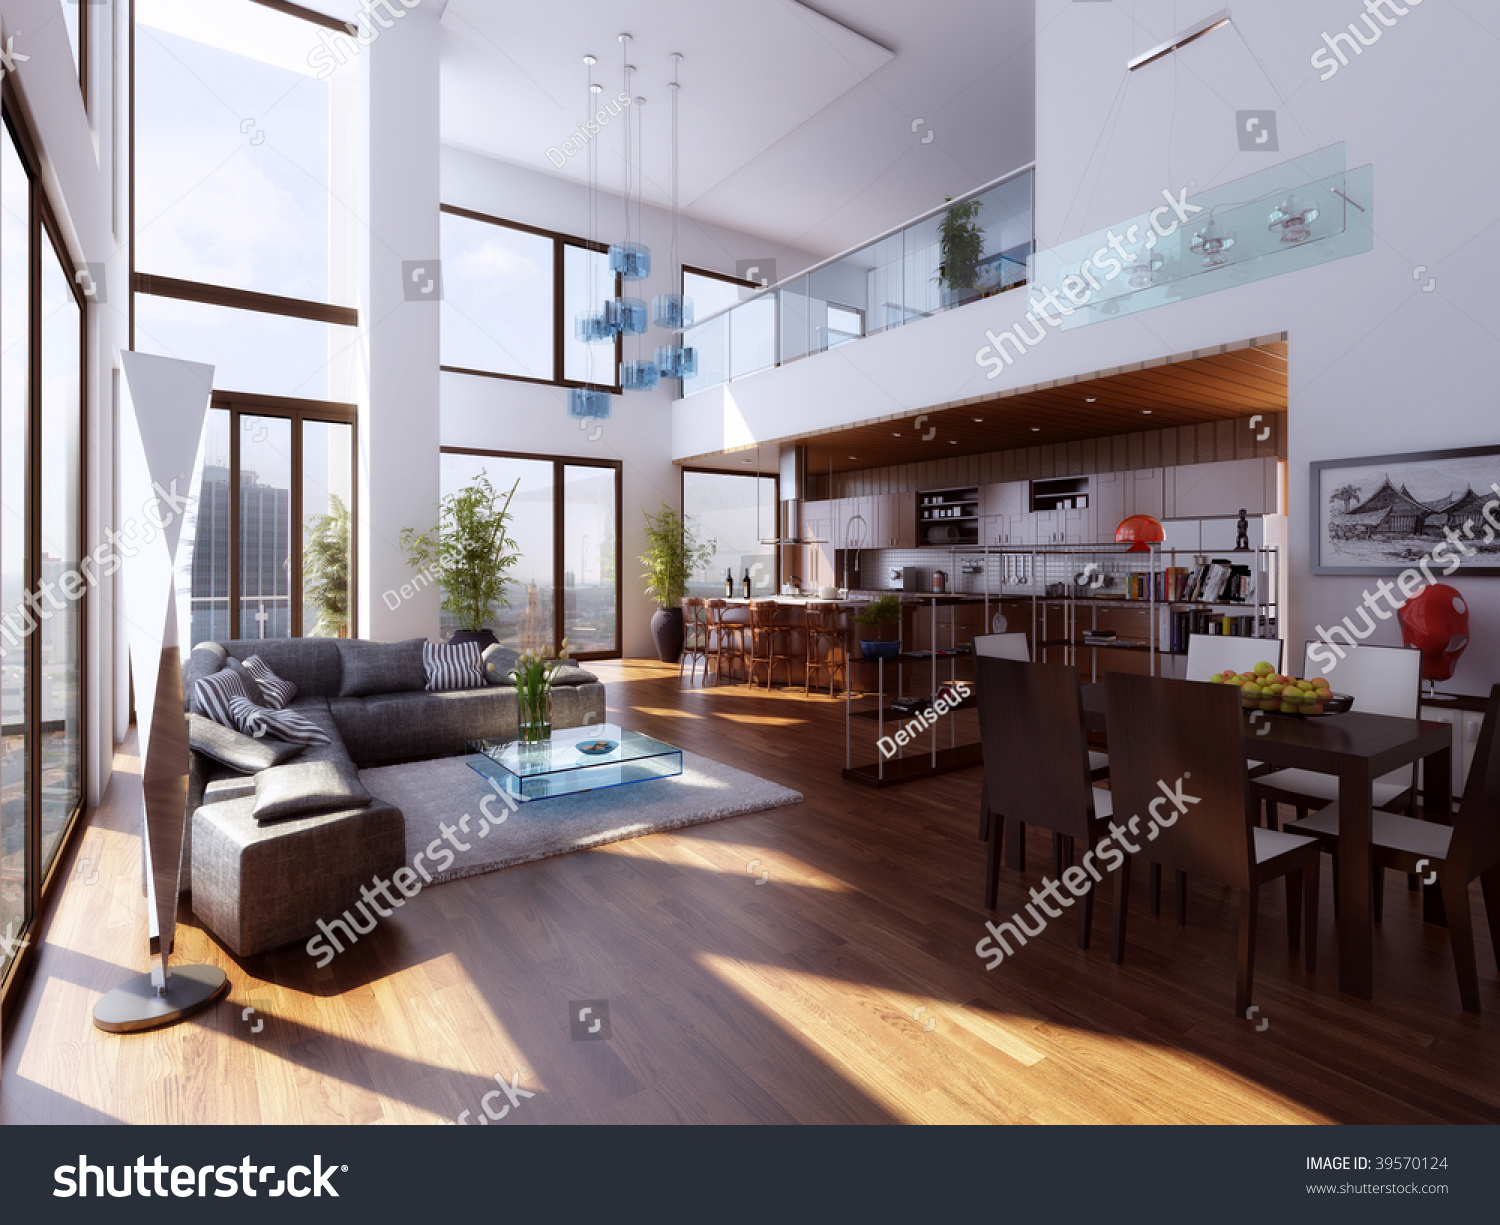 Duplex interior stock illustration 39570124 shutterstock for Duplex home interior photos